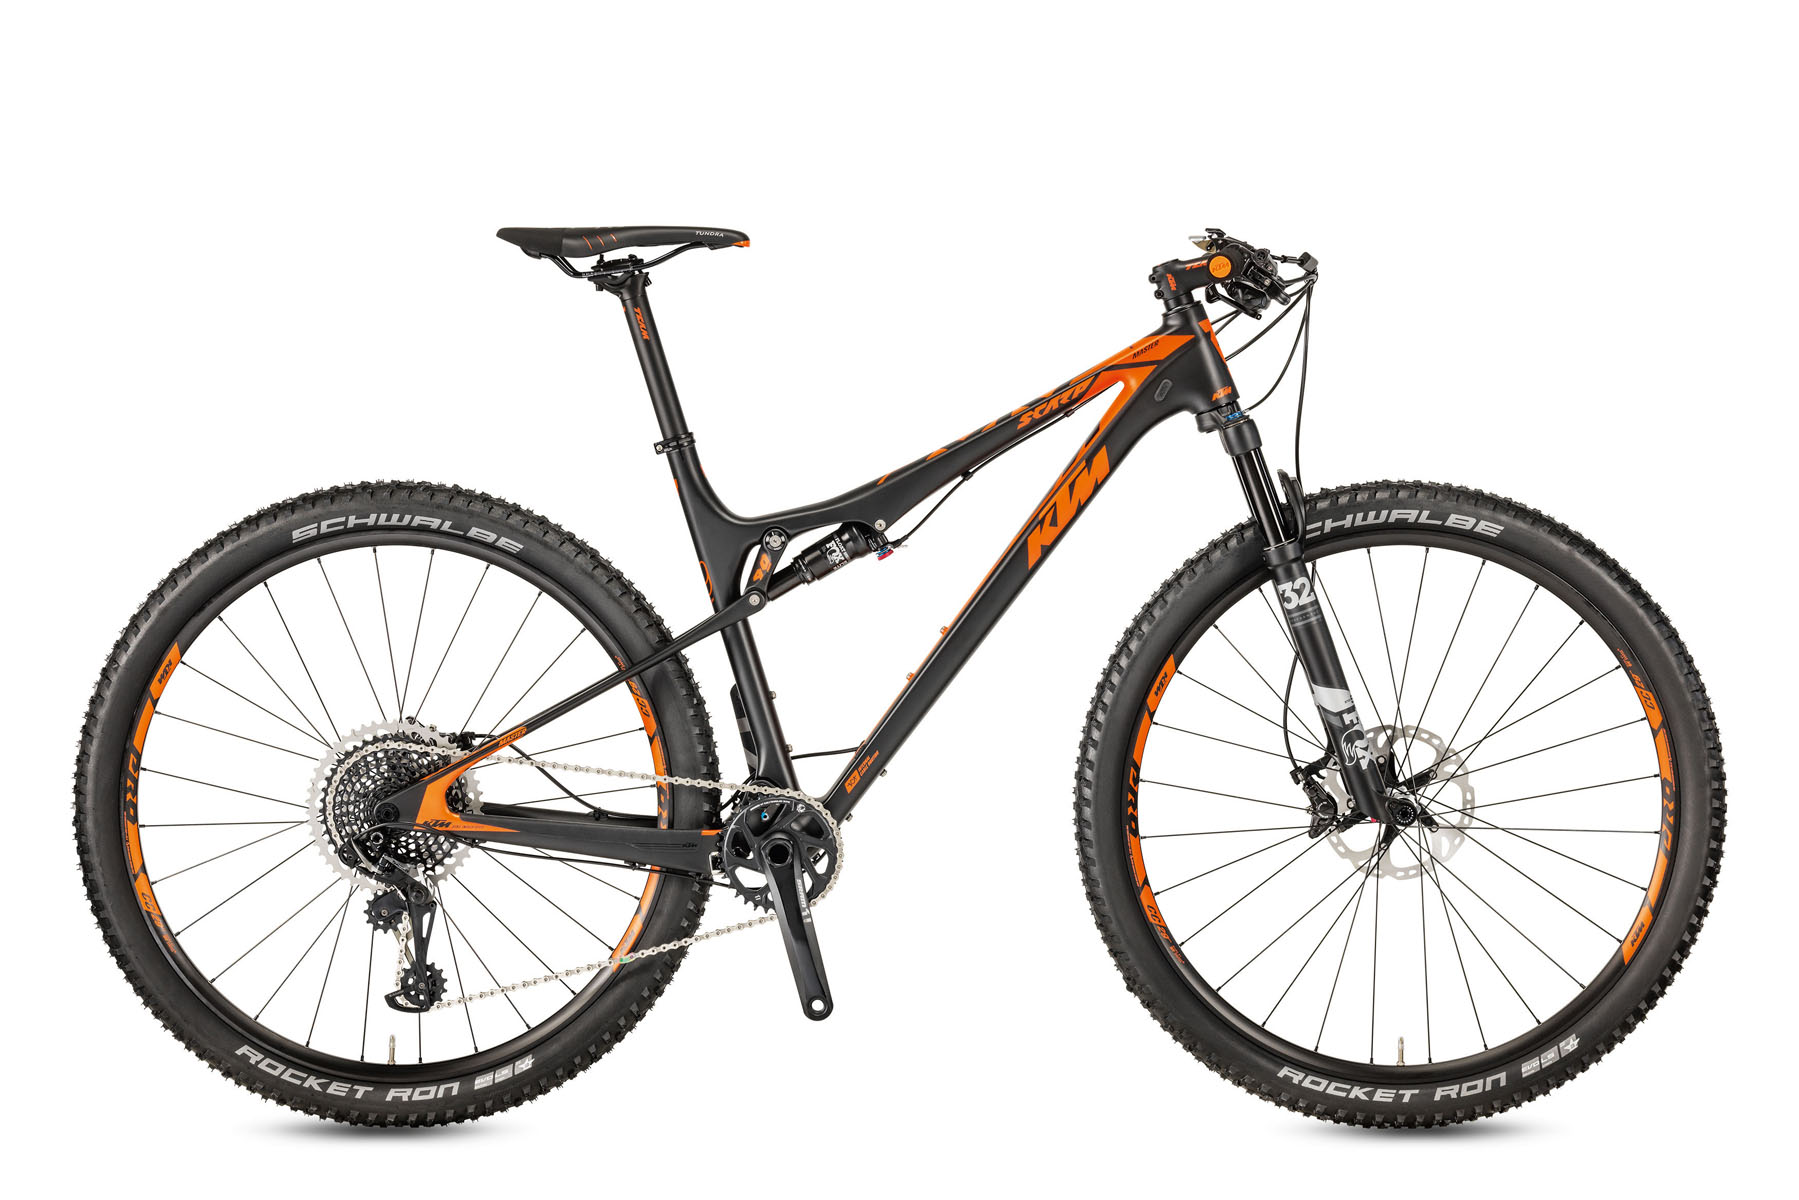 Bicicleta KTM SCARP 29 MASTER 12S X01 Full Suspension – 2017